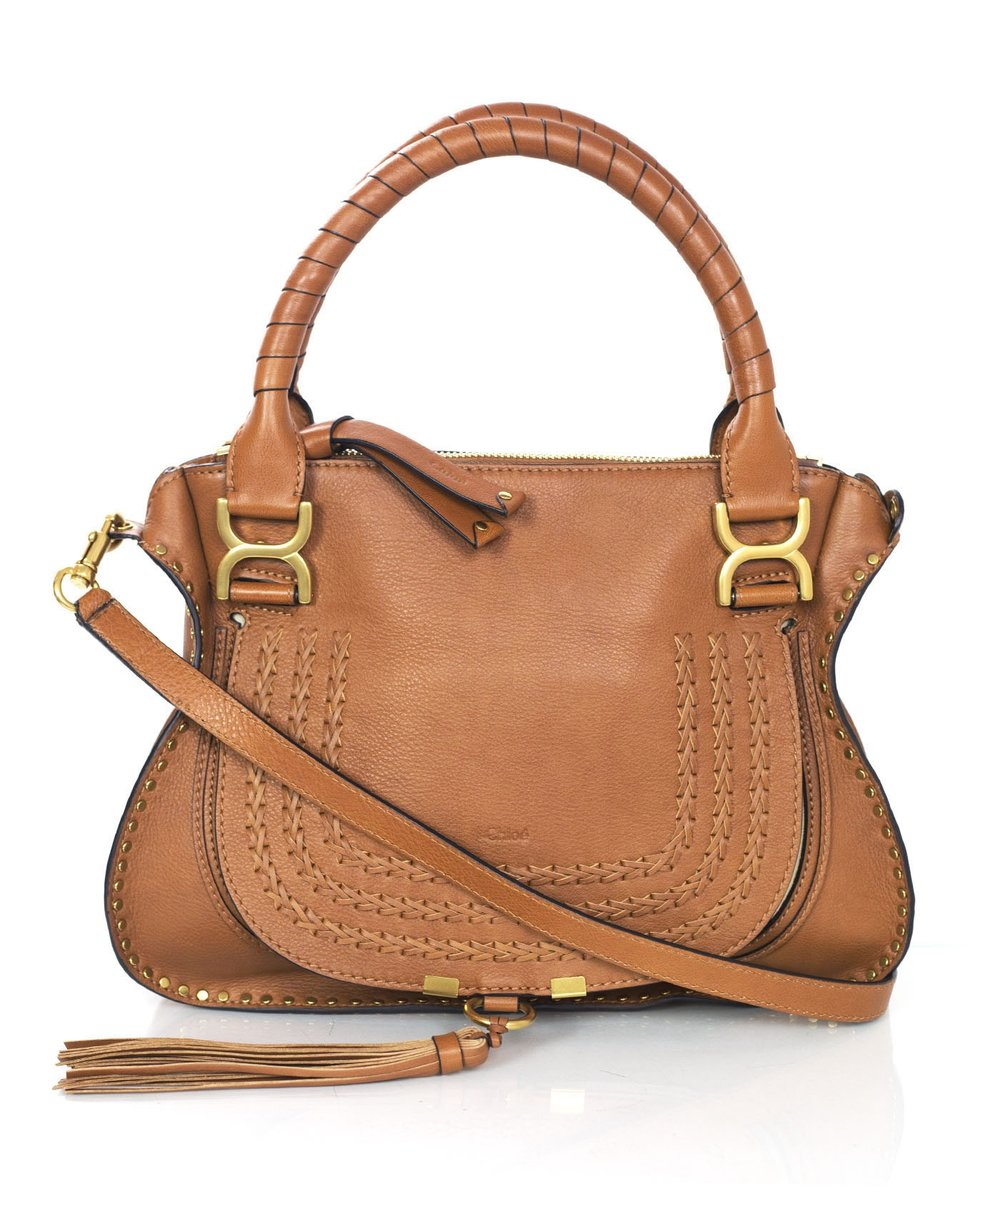 CHLOE tan leather marcie bag w strap 100-9892 1.jpg